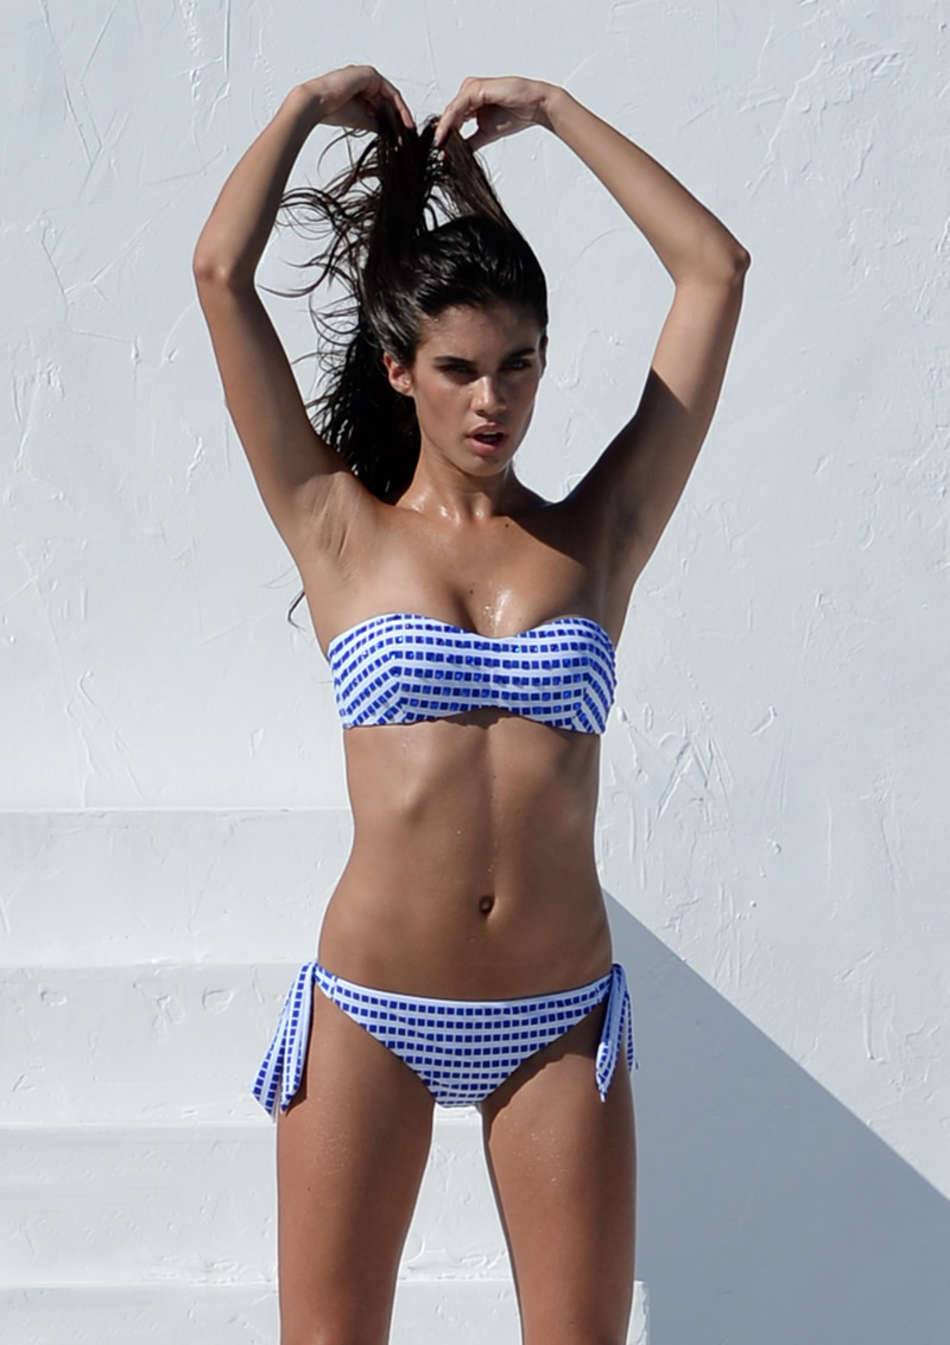 Sara Sampaio Hot Bikini Photoshoot -15 - GotCeleb Katy Perry